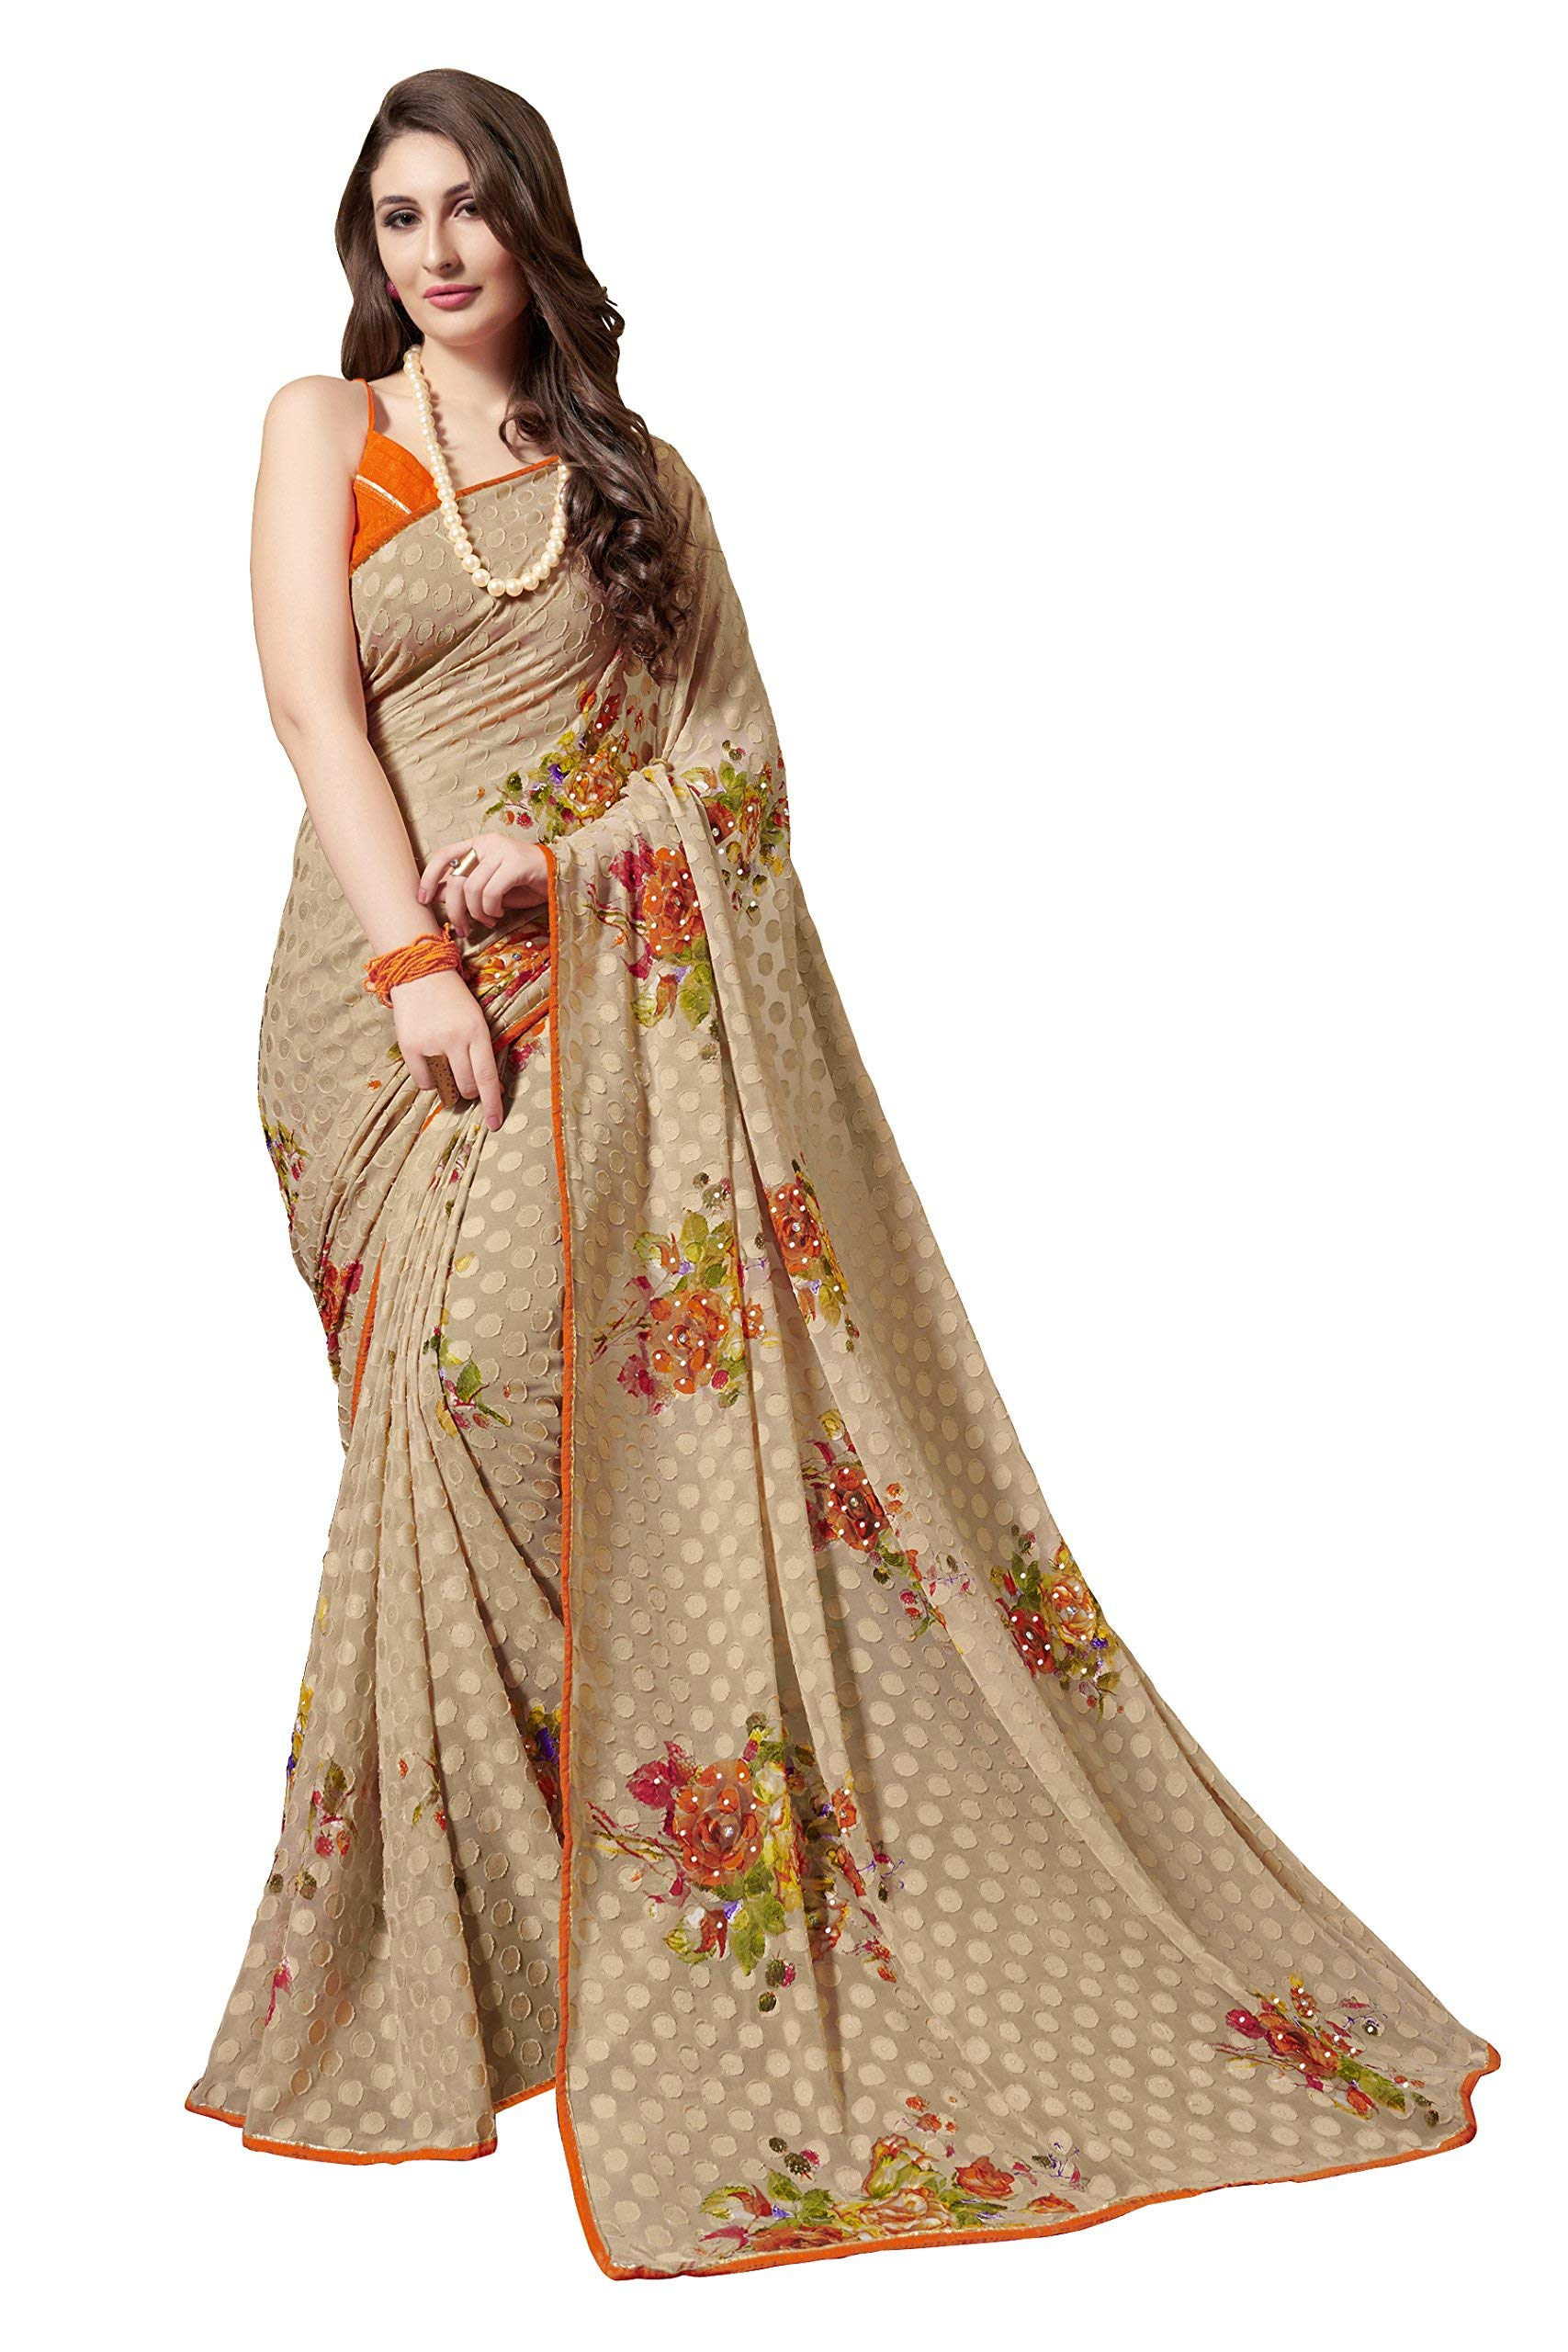 Gaurangi Creation Women's Chiffon Floral Printed Saree with Blouse Piece, Free Size (KLS1007, Beige)